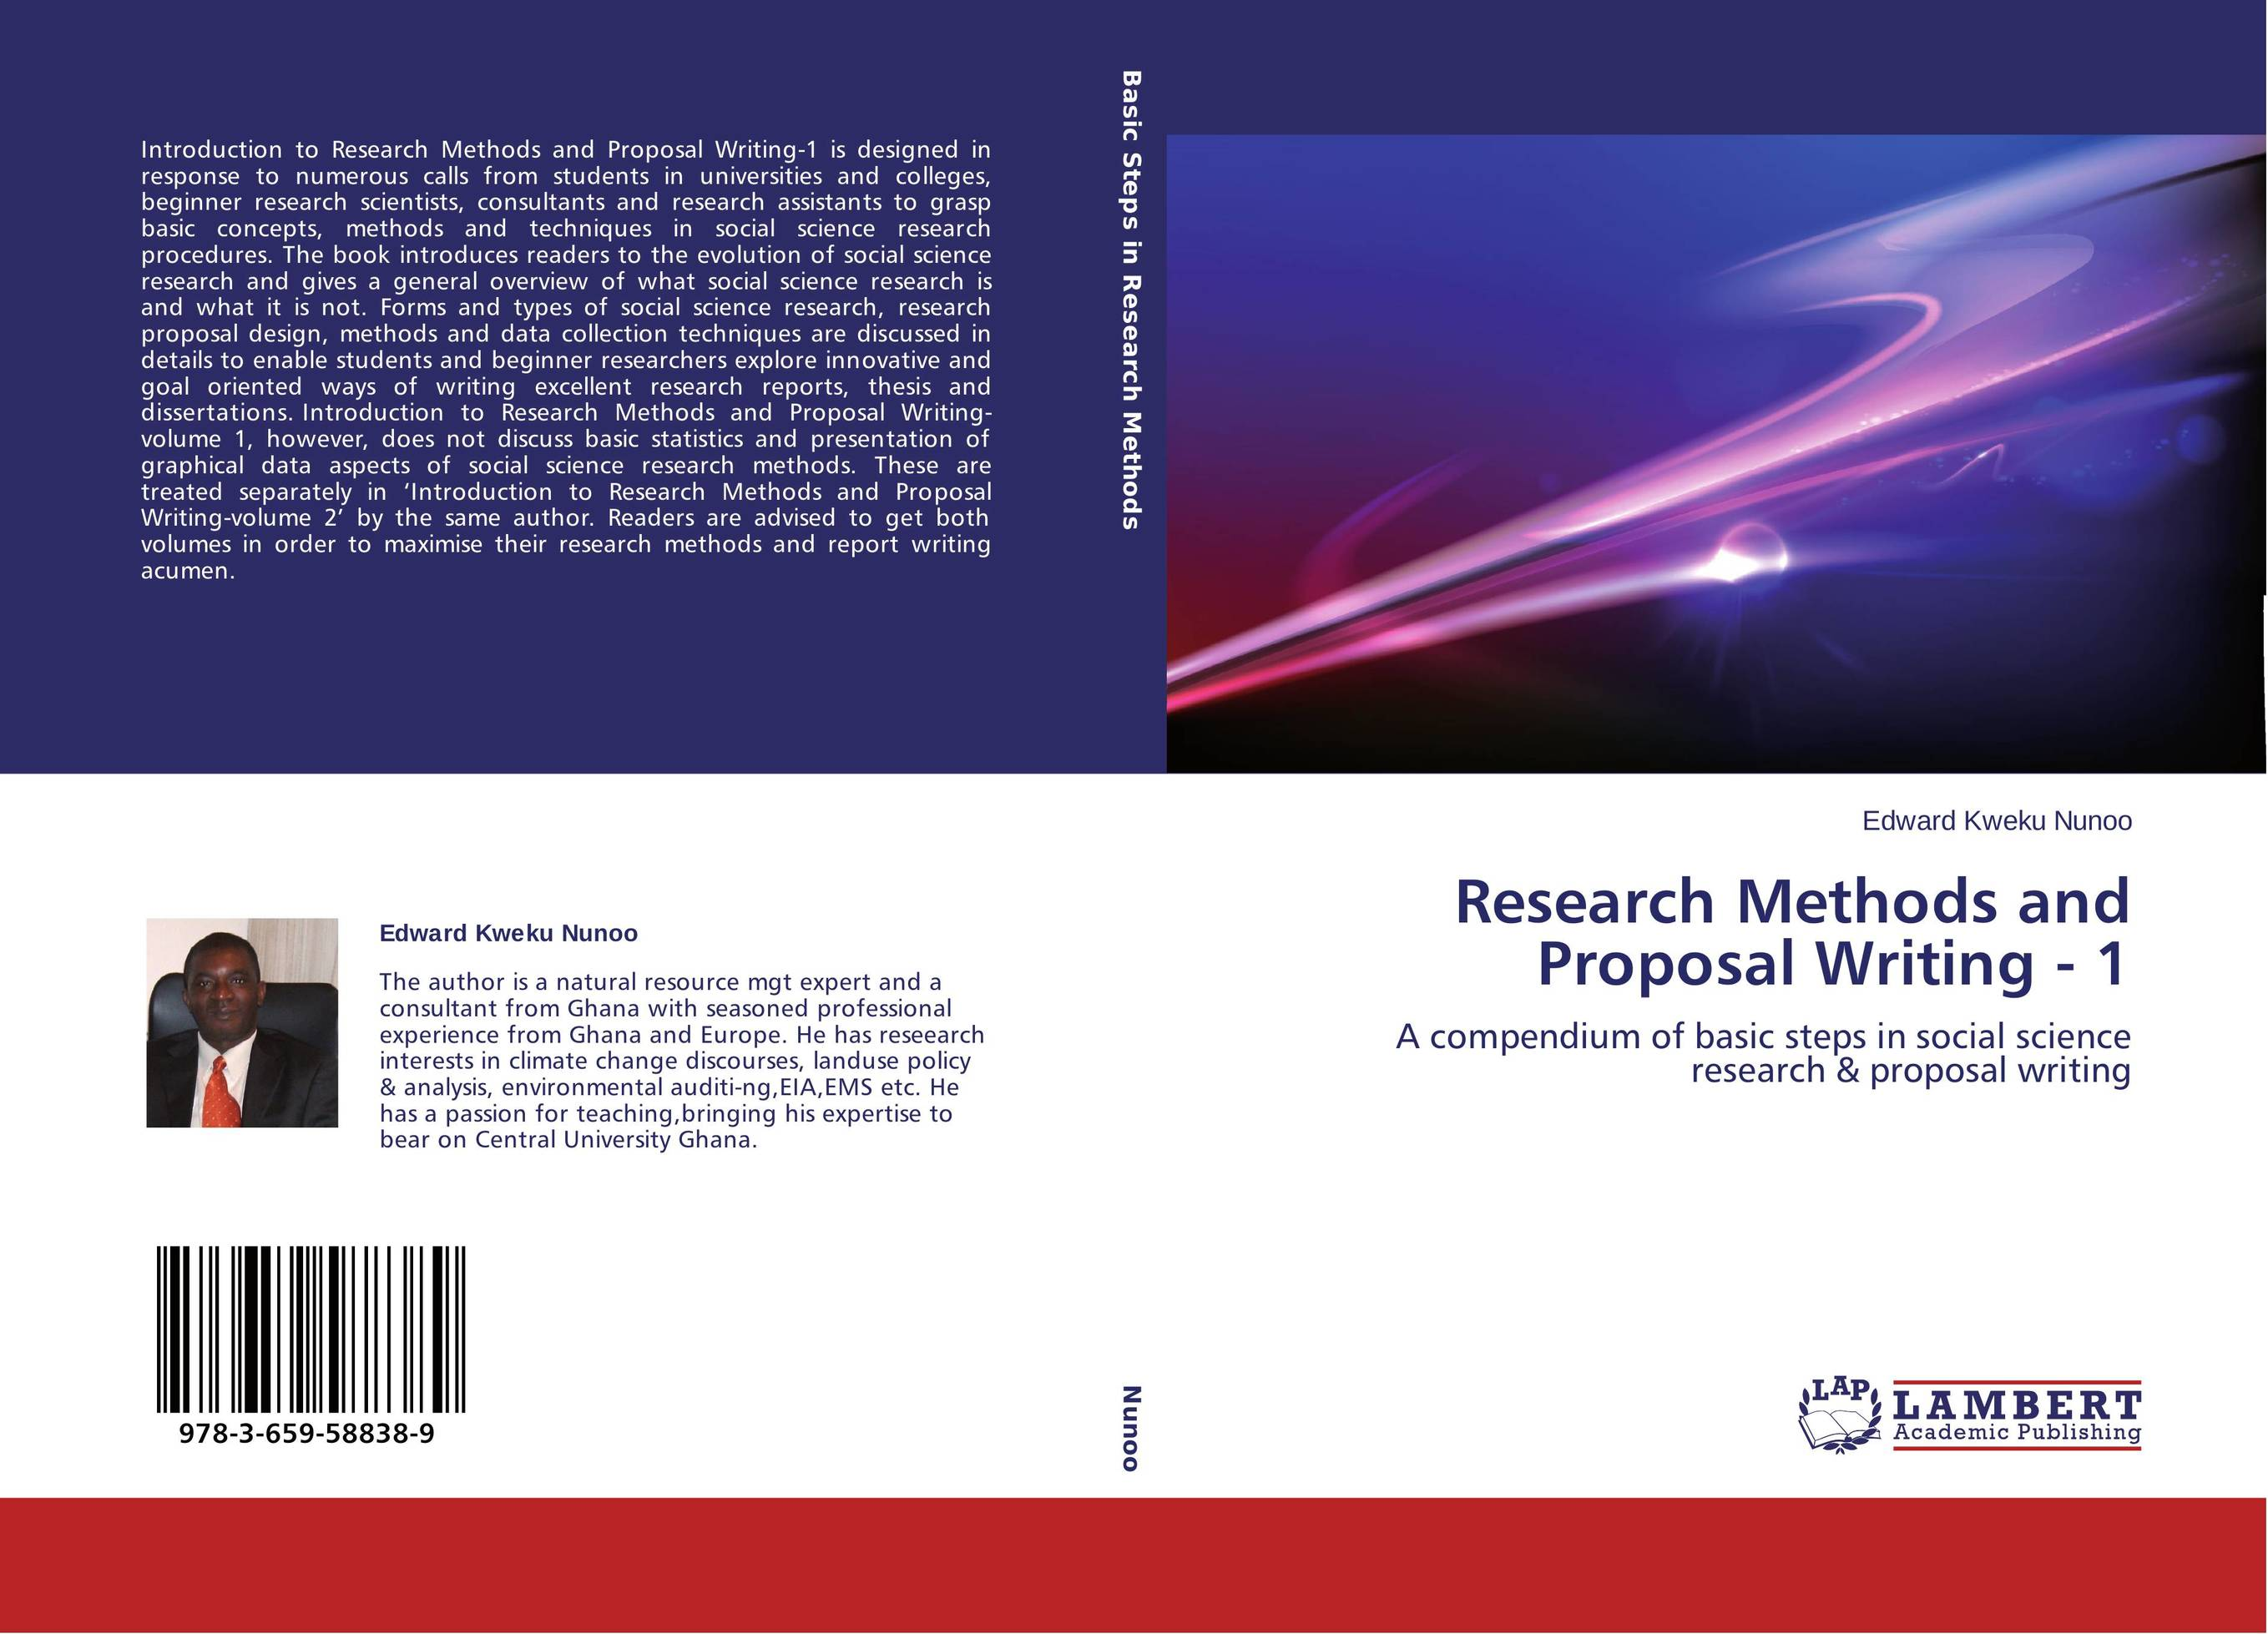 contents of social sciences research proposal Empirical social science research paper2 it will explore the way to write each of the sections of the empirical social science research paper in turn and will discuss cases where the social science research paper may deviate from research write-ups used in.